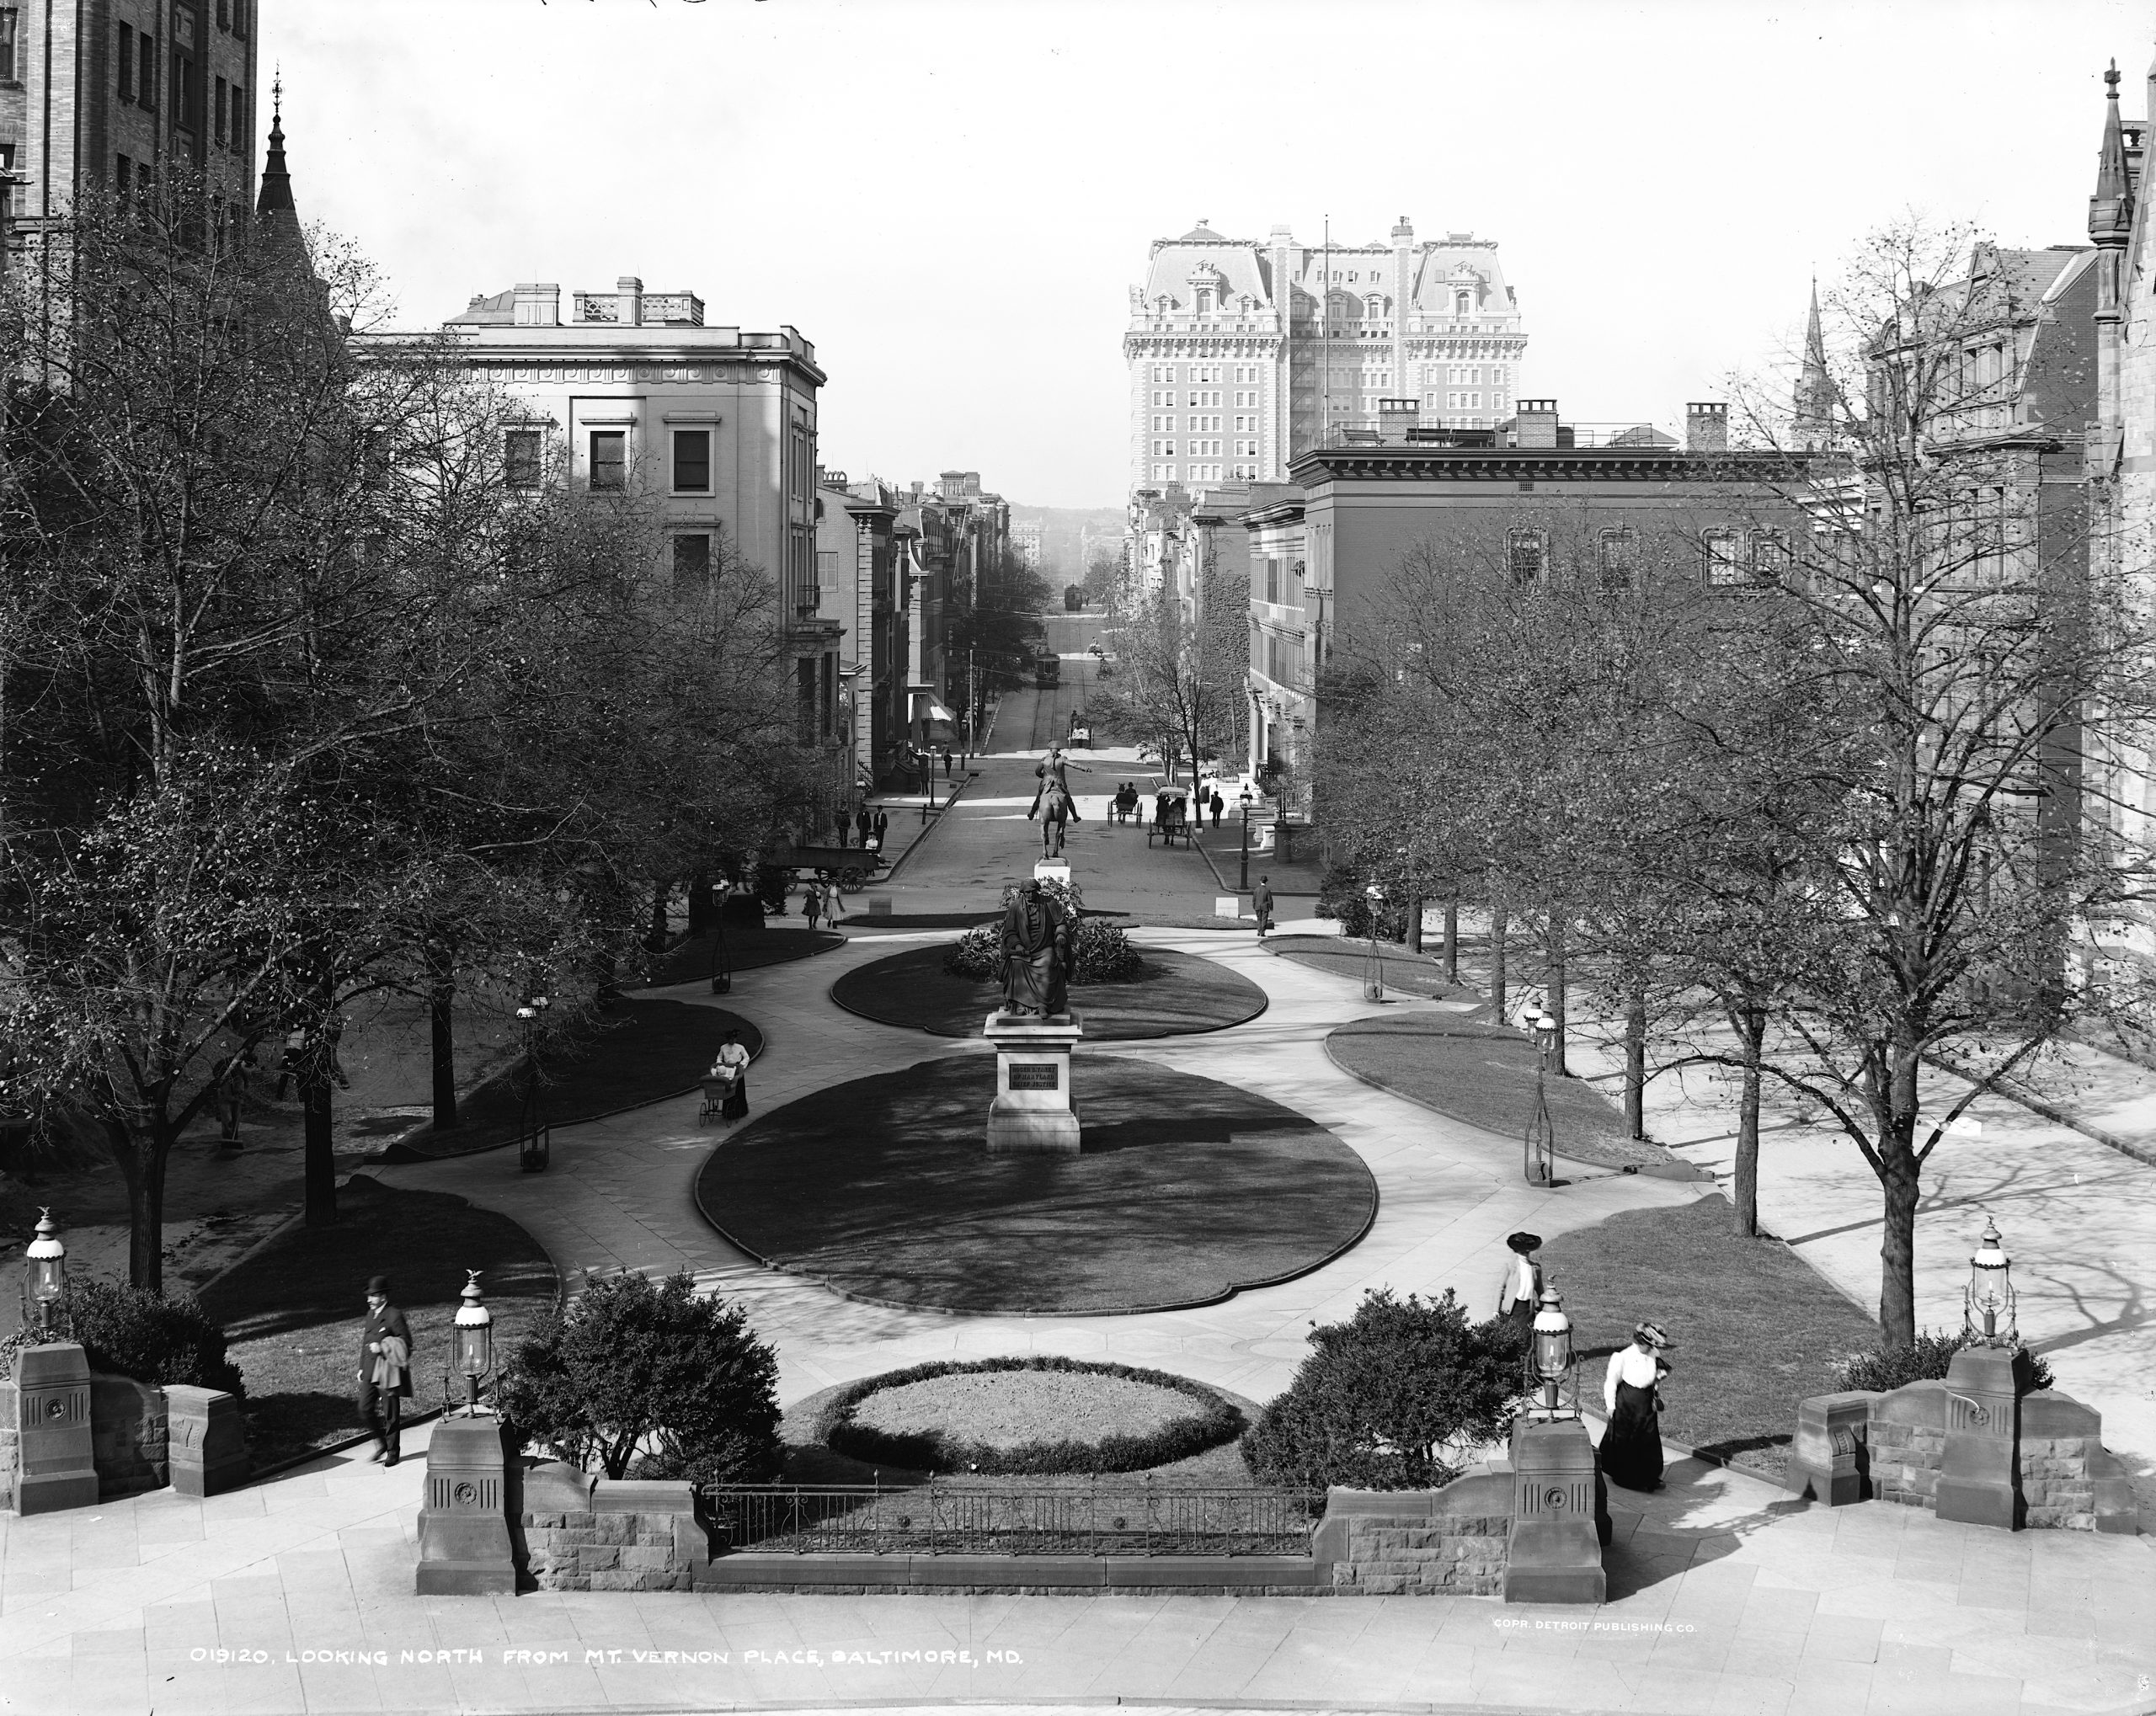 Another Great Photo of Mt. Vernon Place